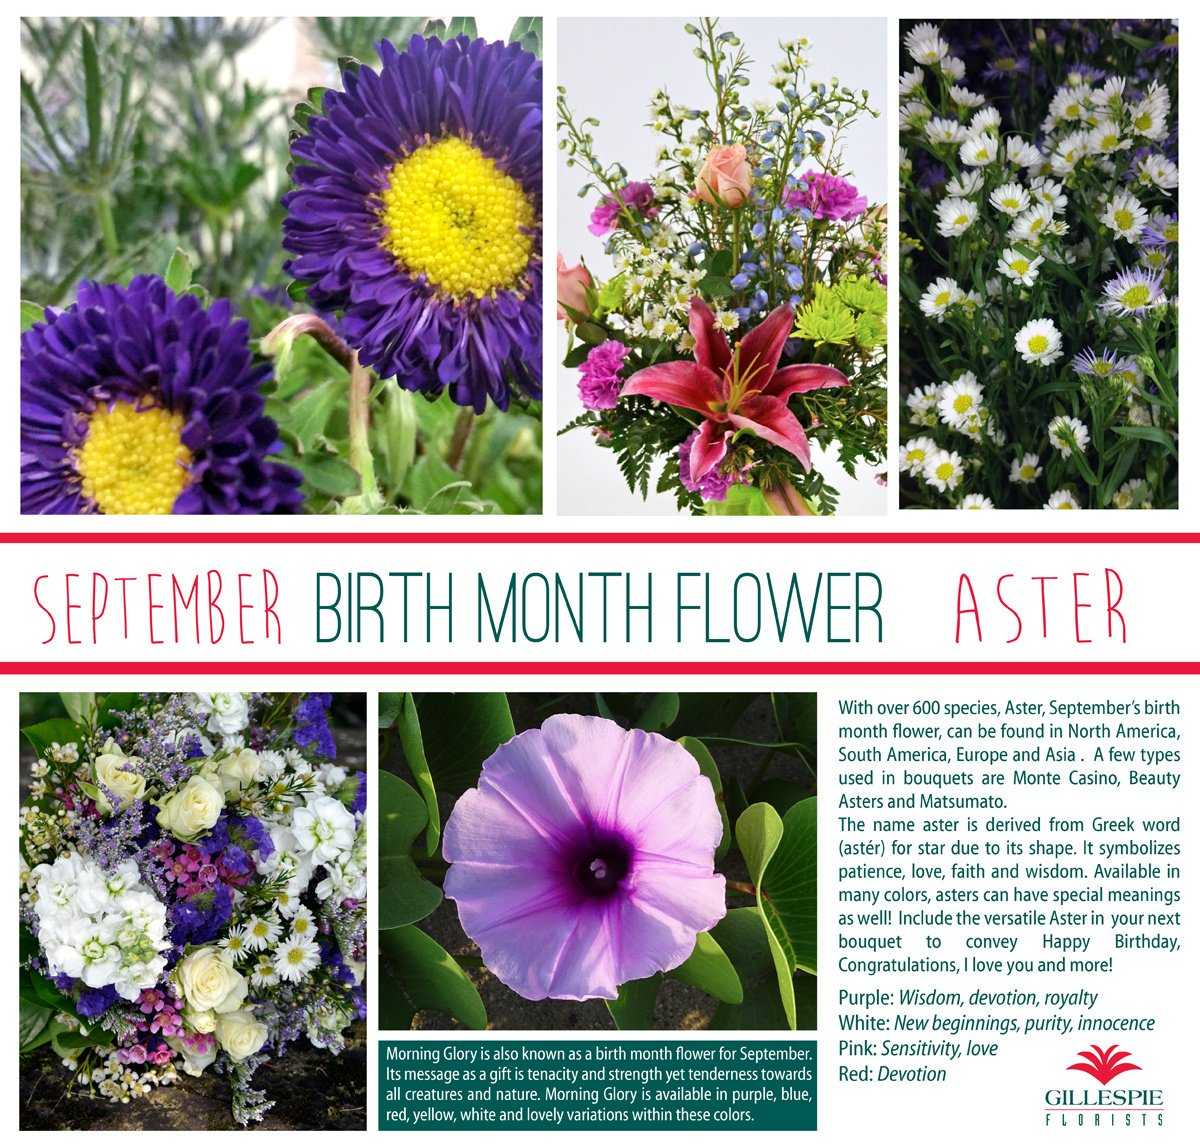 Ask for aster in birthday bouquets this month as it's the birth month flower for September! Got to love the brilliant colors in these fancy flowers!